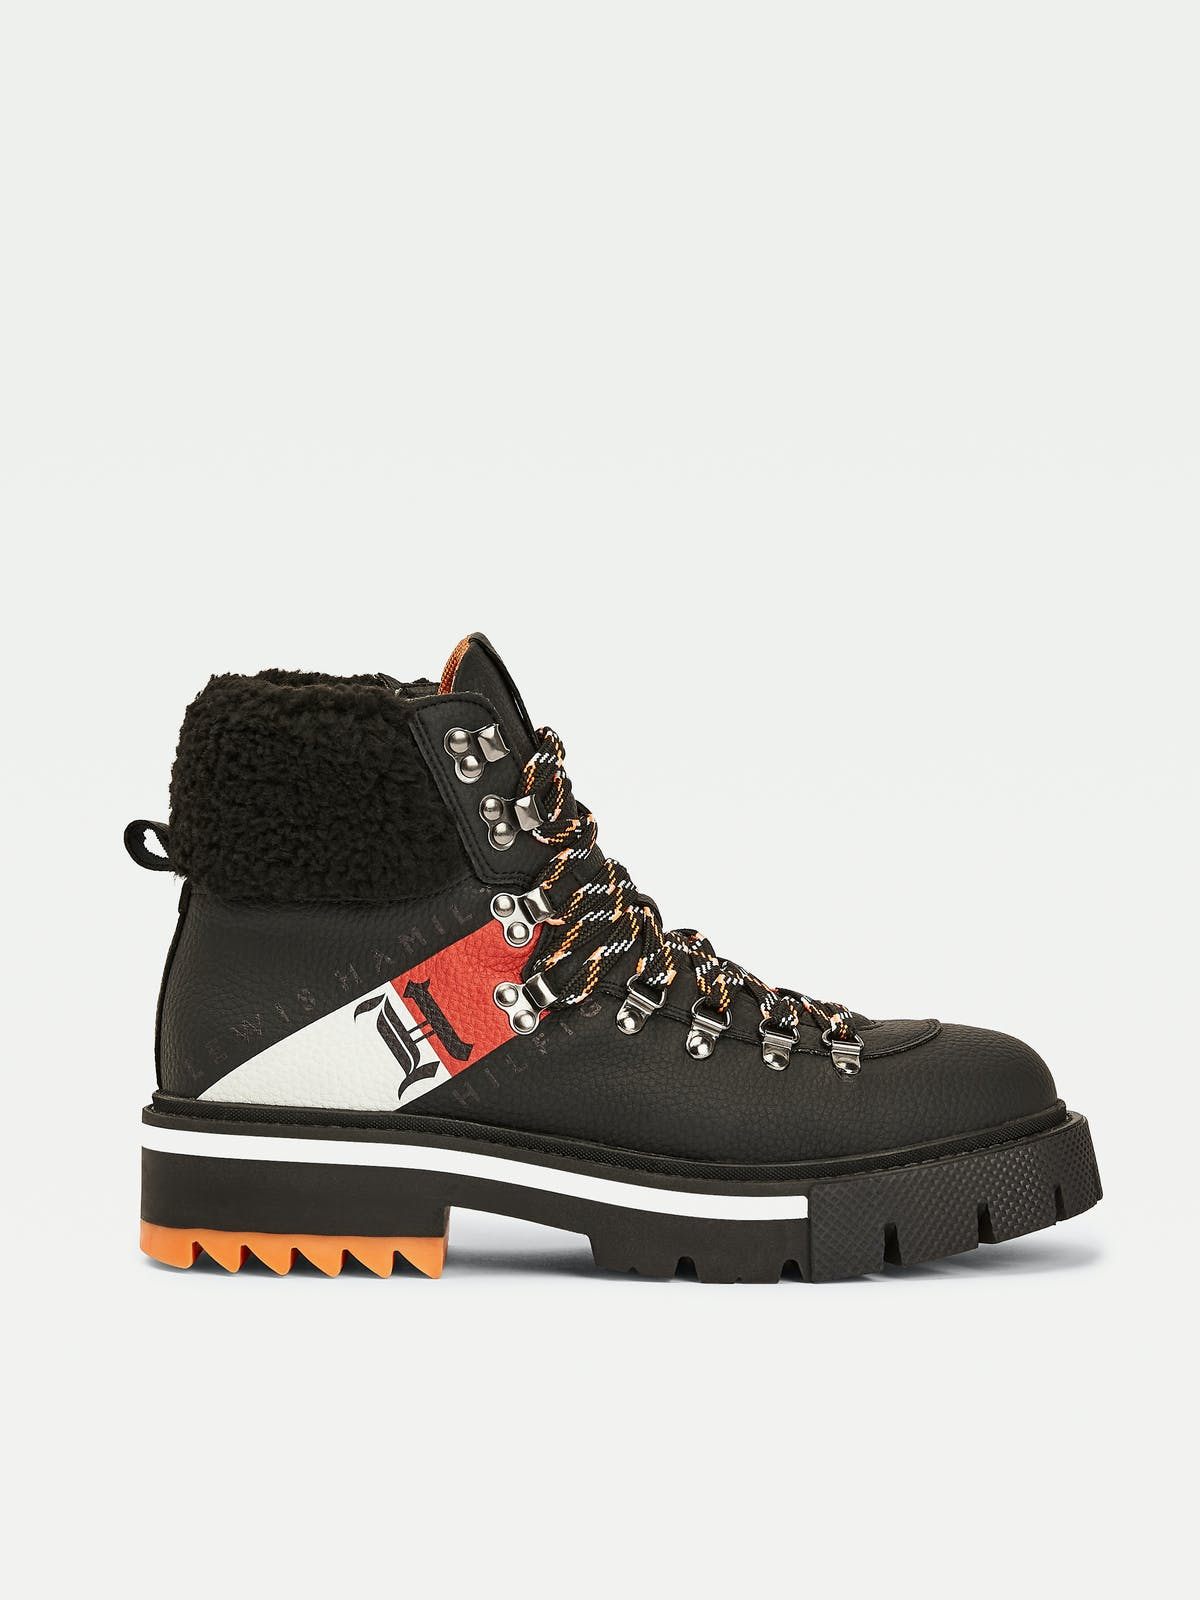 Lewis Hamilton Shearling Chunky Boots